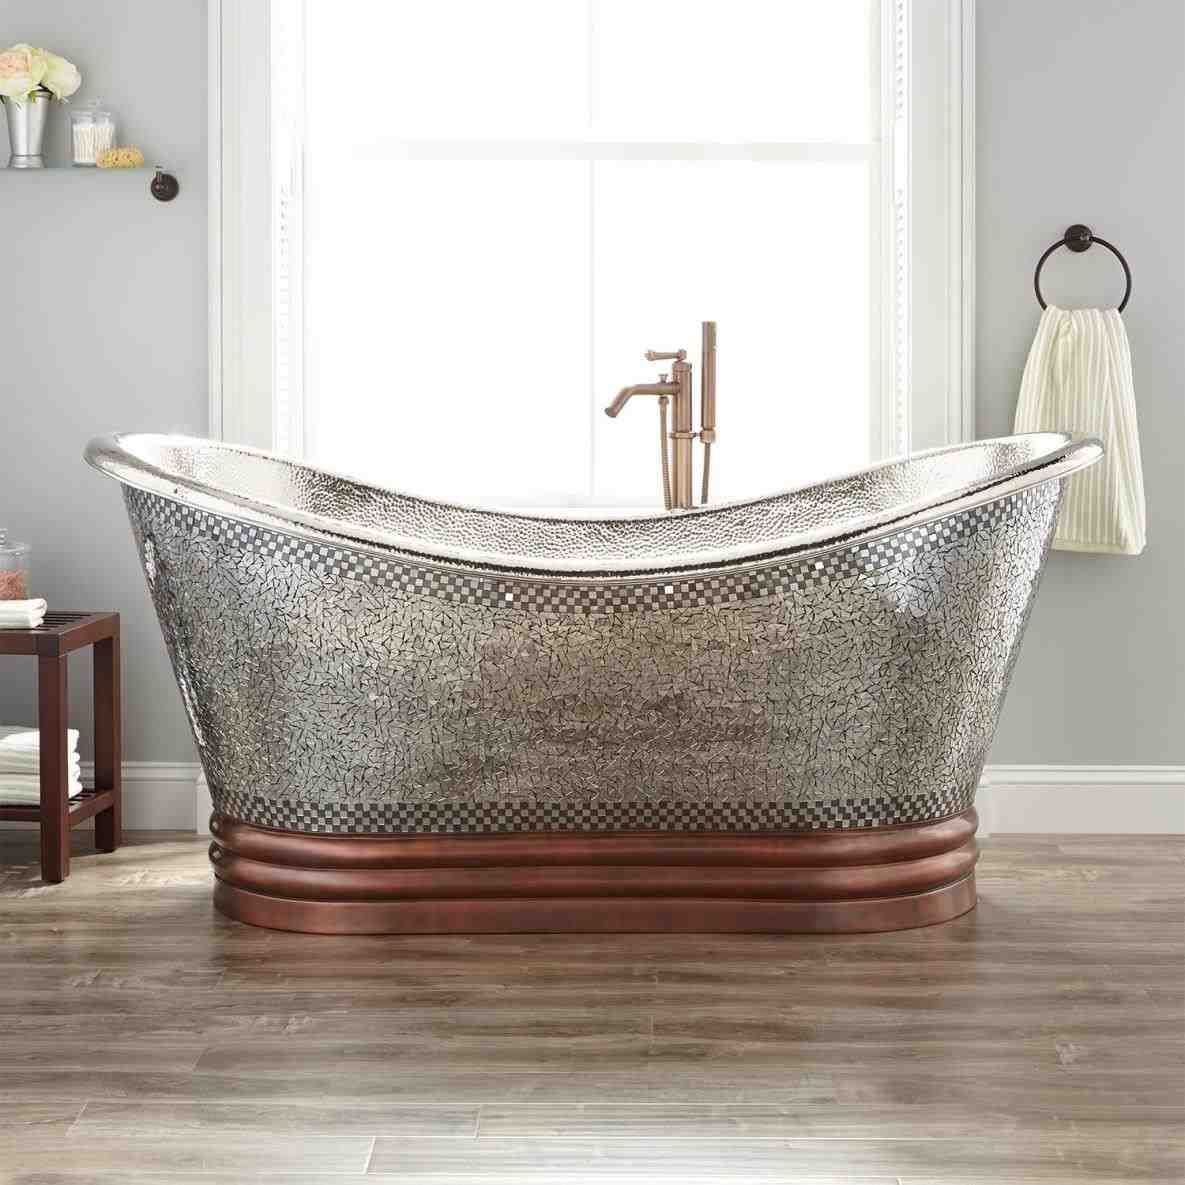 This free standing tub copper - home / bathroom / kyah oval double ...